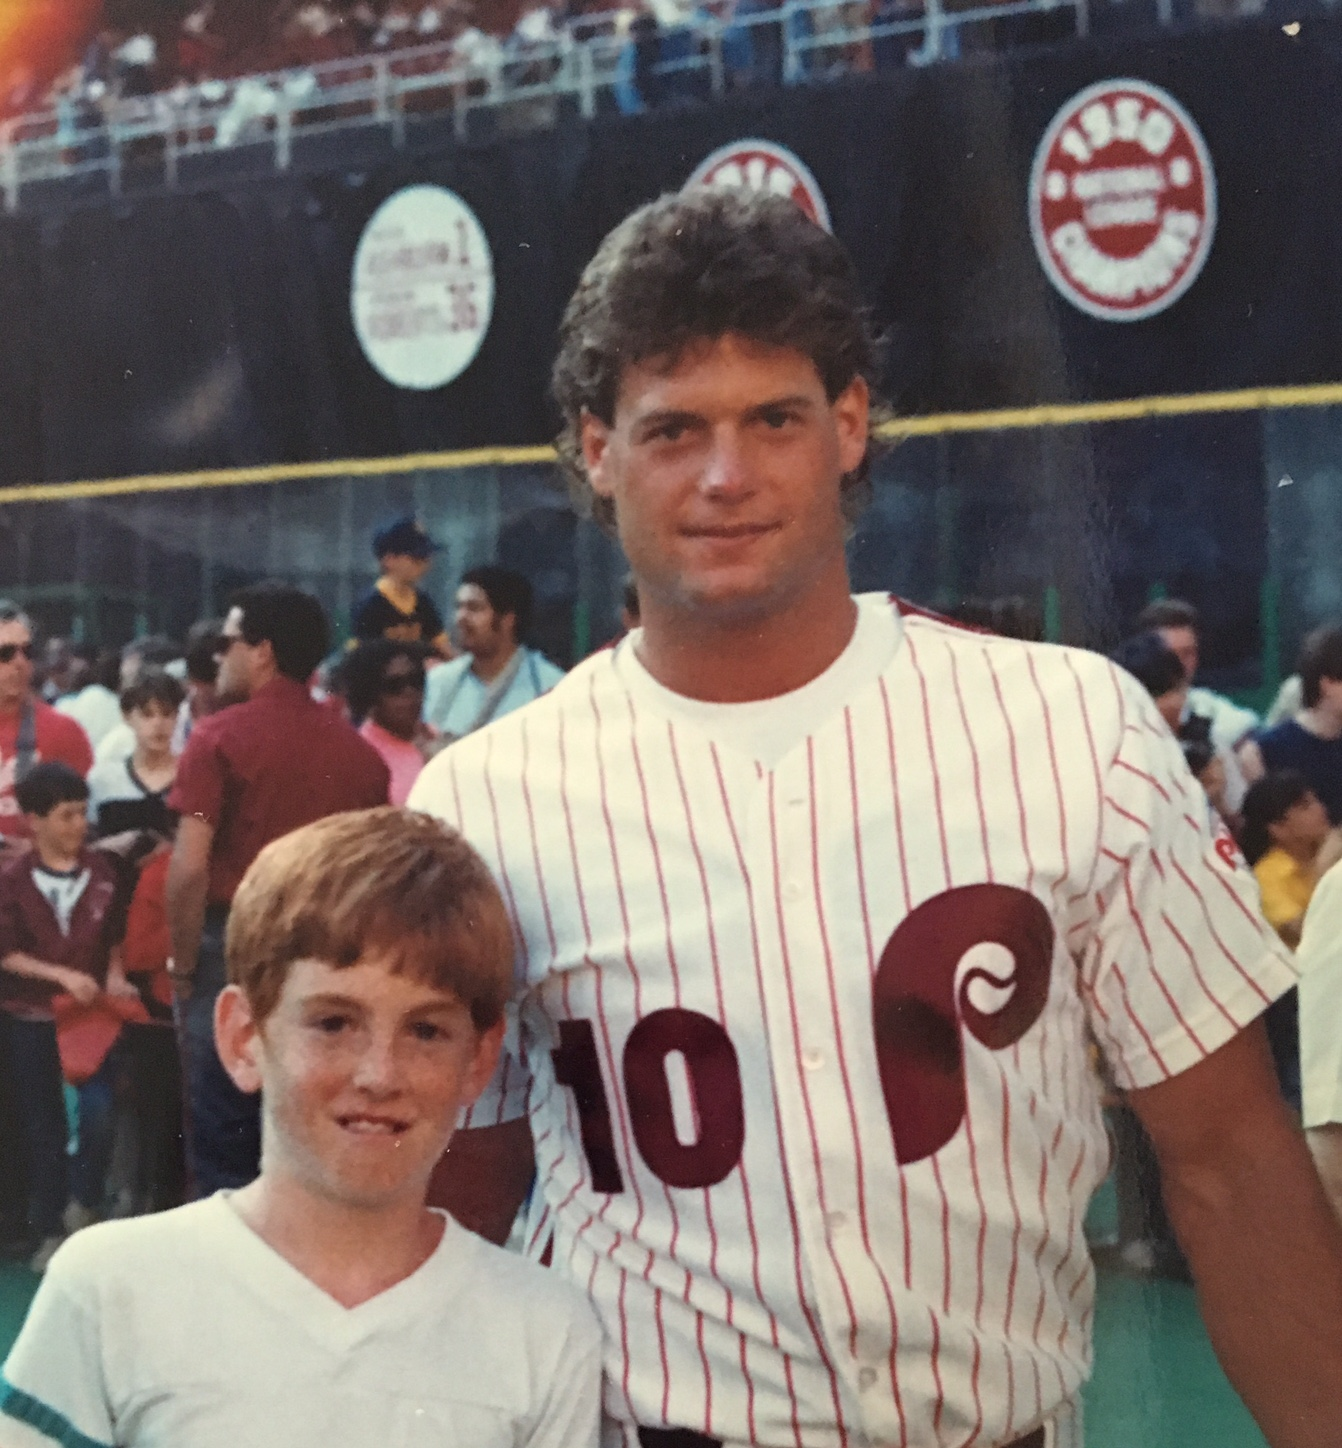 Fellow DAWG '94 alumni/WudderWorld citizen Mike Driscoll, with Dutch Daulton on the field of The Vet, Camera Night '87.